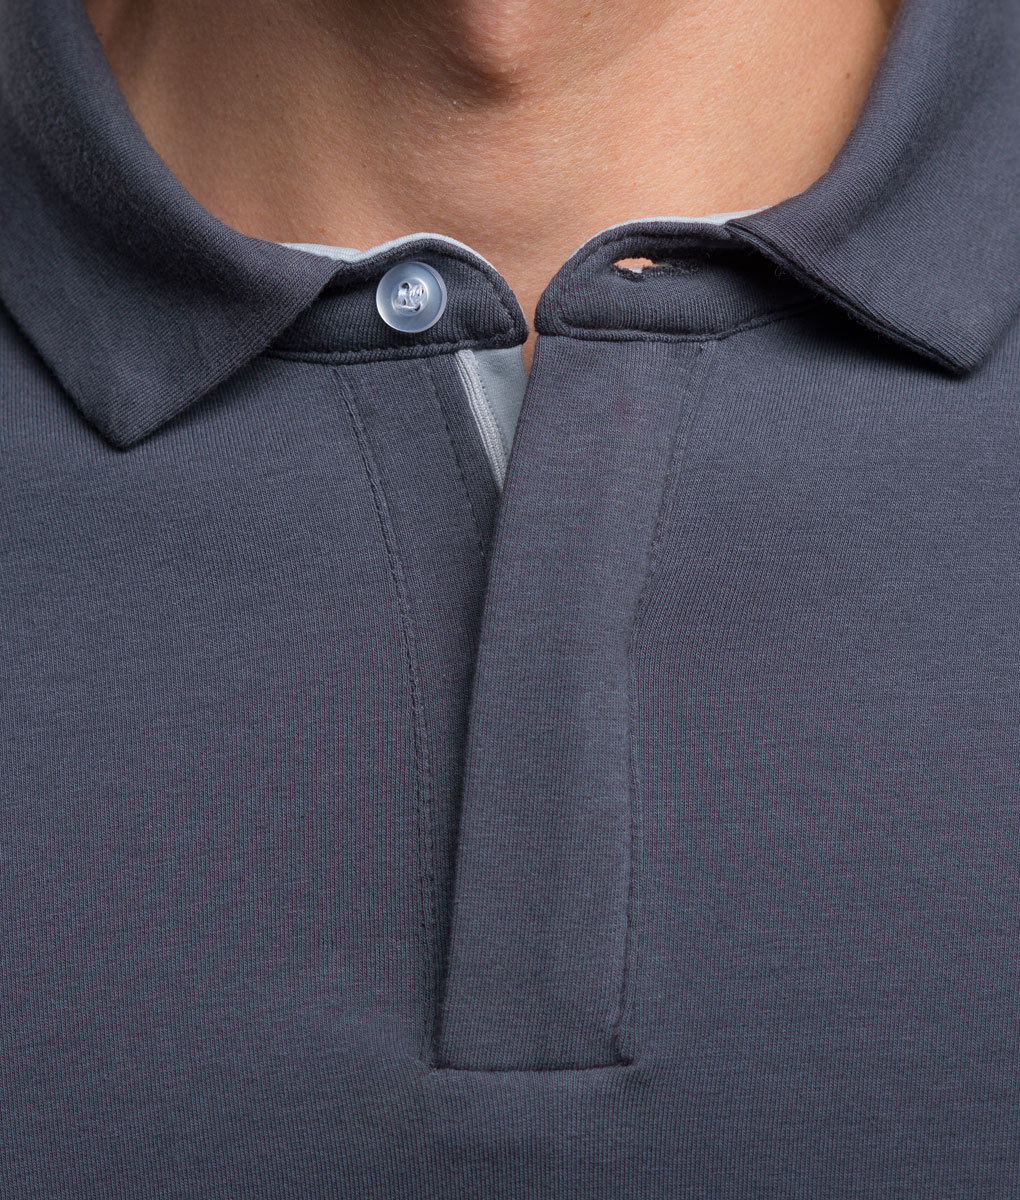 Transparent-casual-cycling-titanium-classic-polo-neck-detail